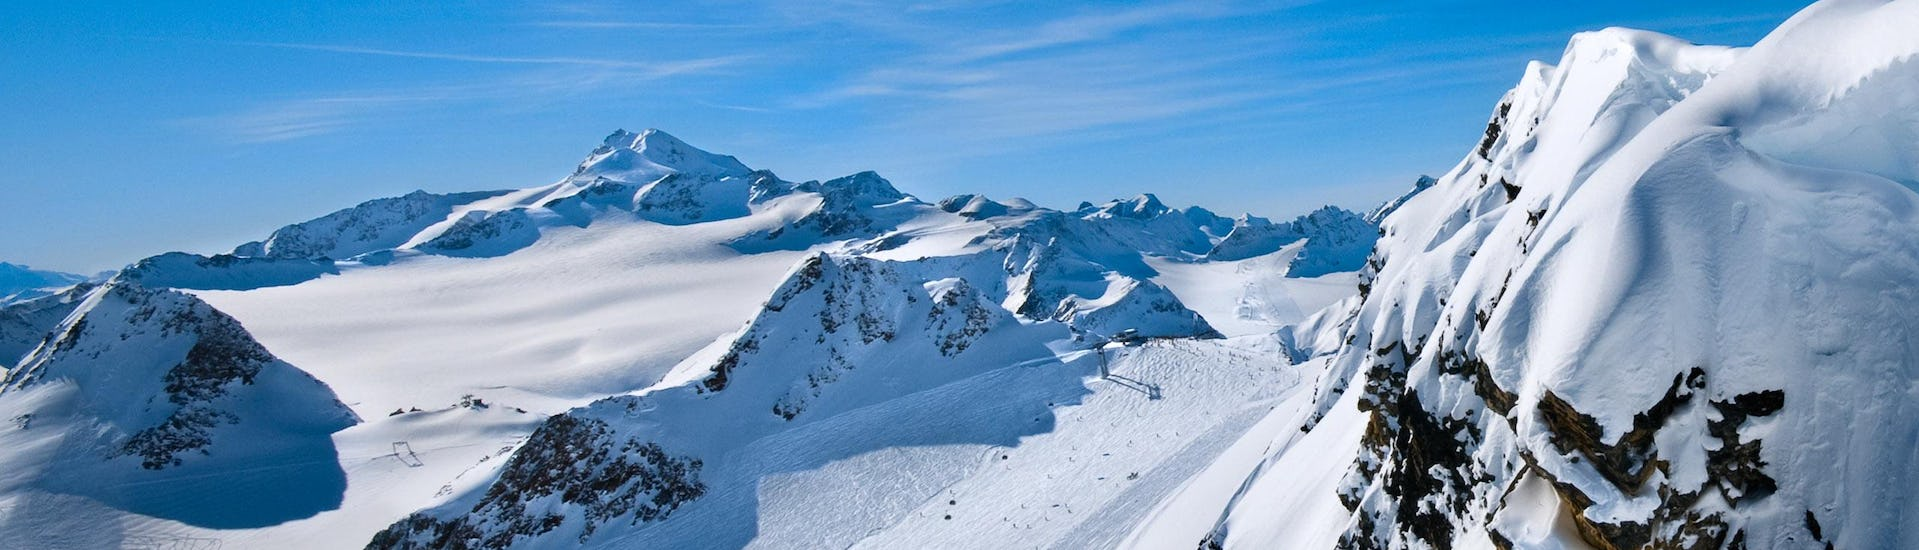 A scenic view of the mountainous landscape while learning to ski with a ski school in the ski resort Méribel.